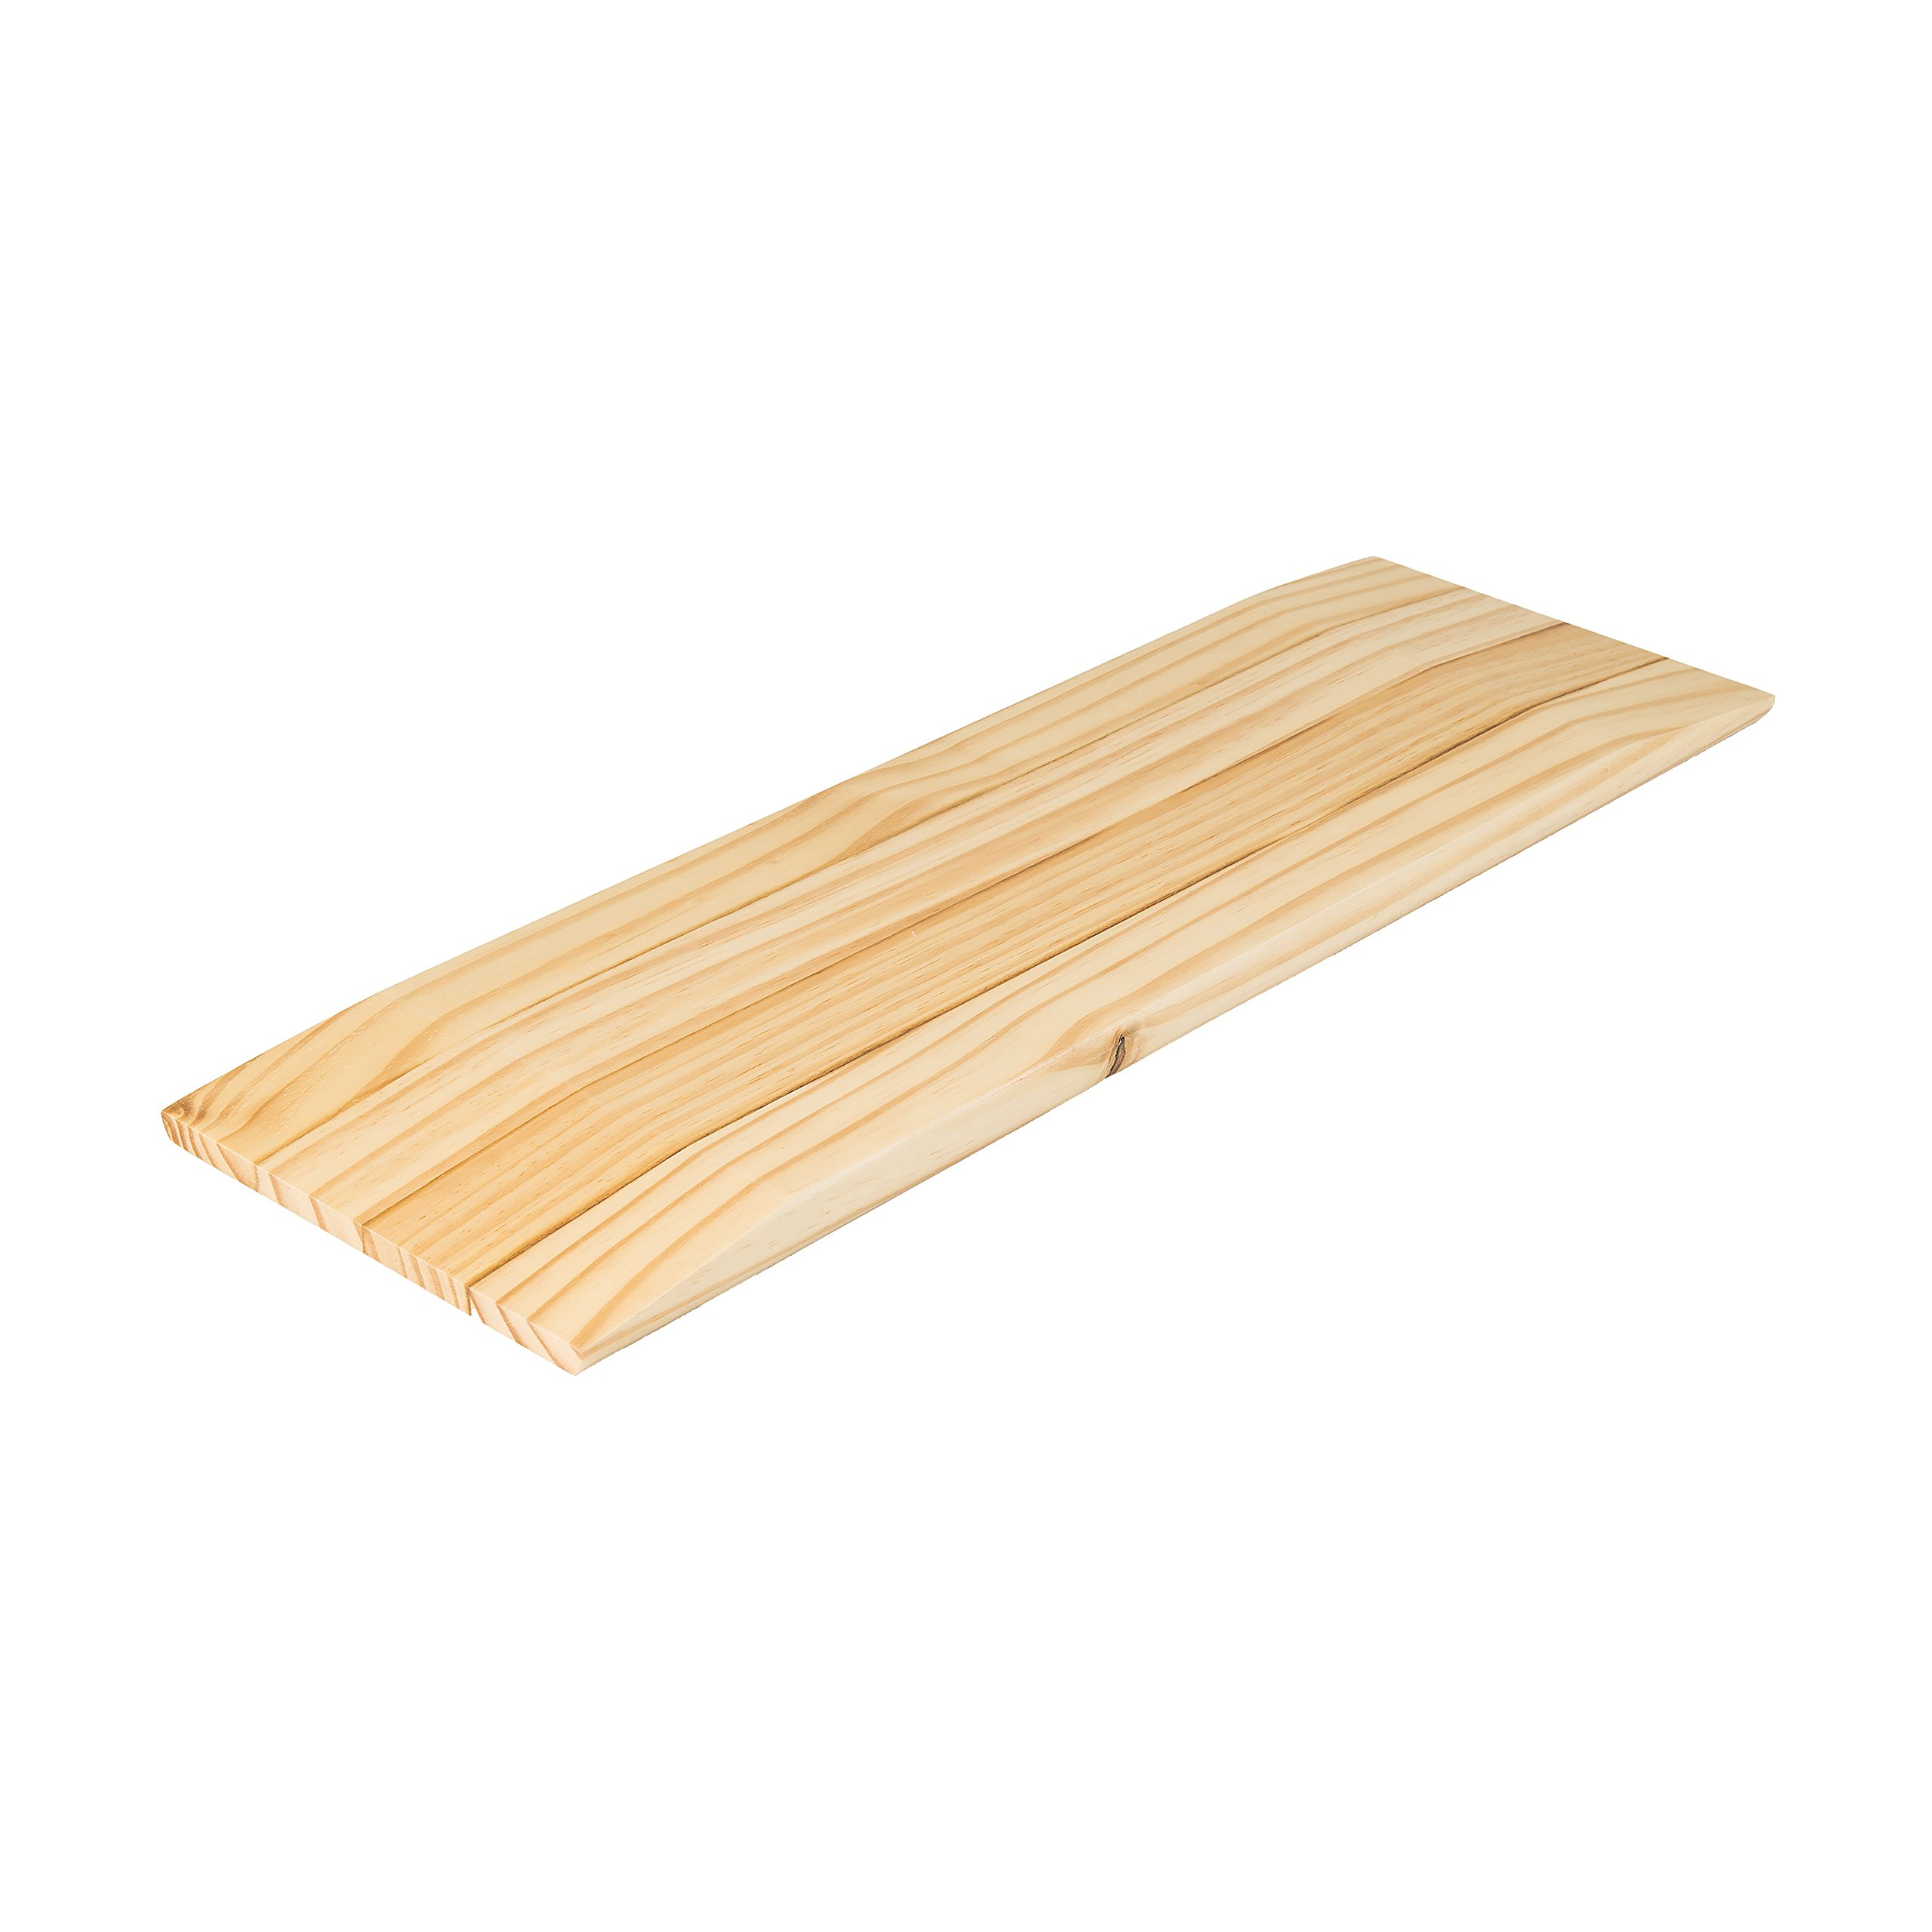 Mabis DMI Deluxe Wood Transfer Board Patient Slide Board, 8 x 24, Compact Size, Southern Yellow Pine